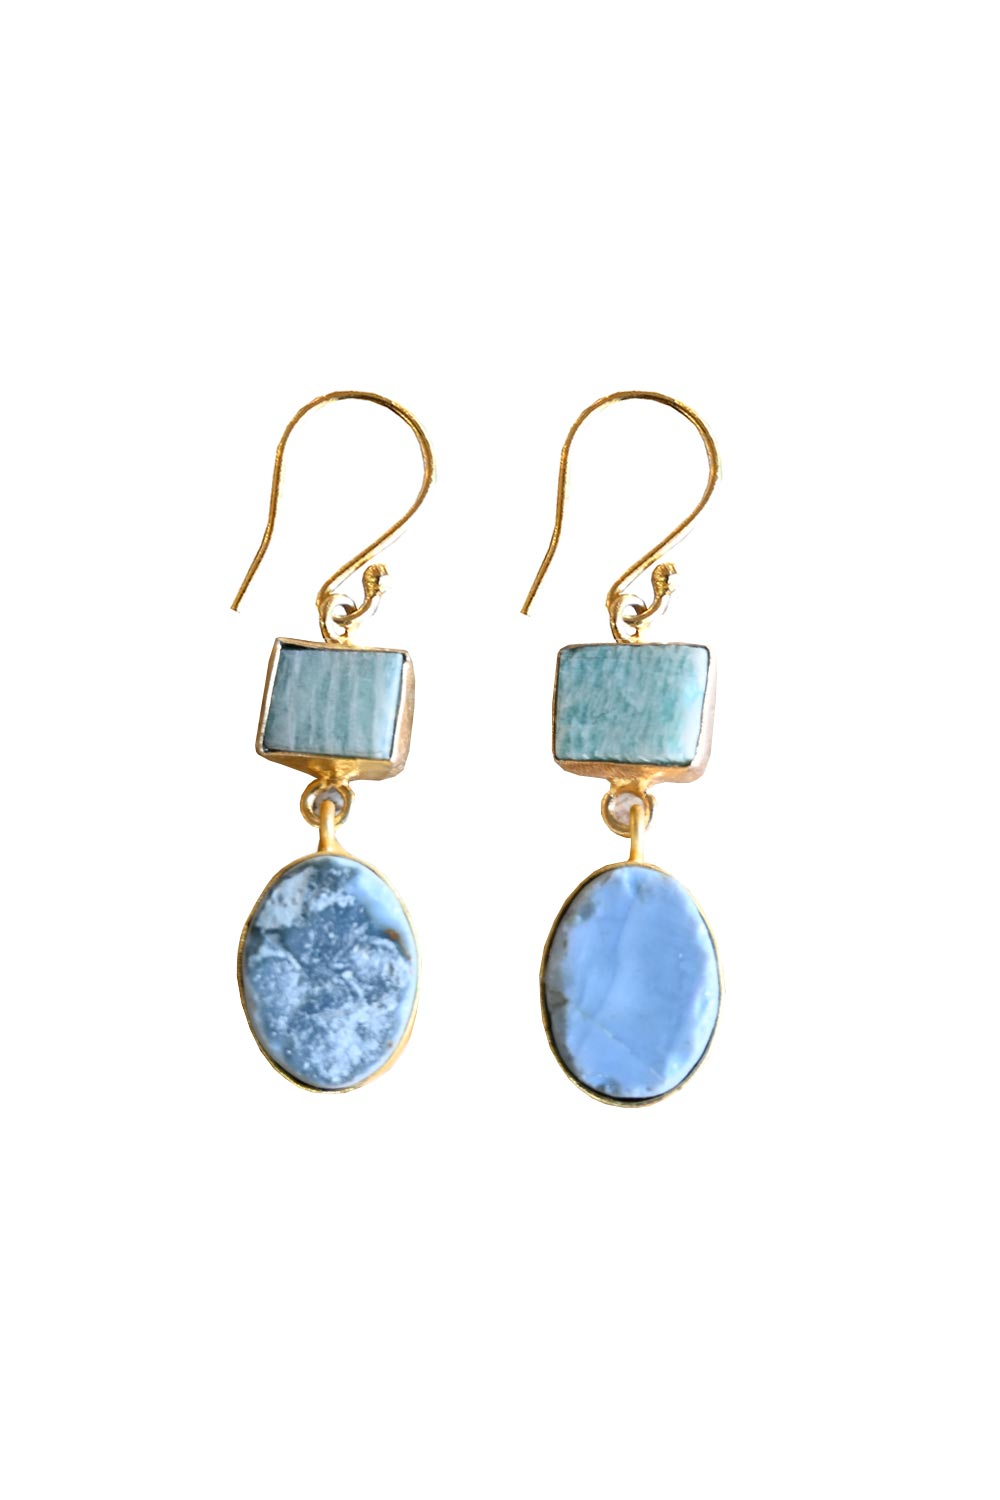 Kalkan Turkish Earrings - Kabana Shop